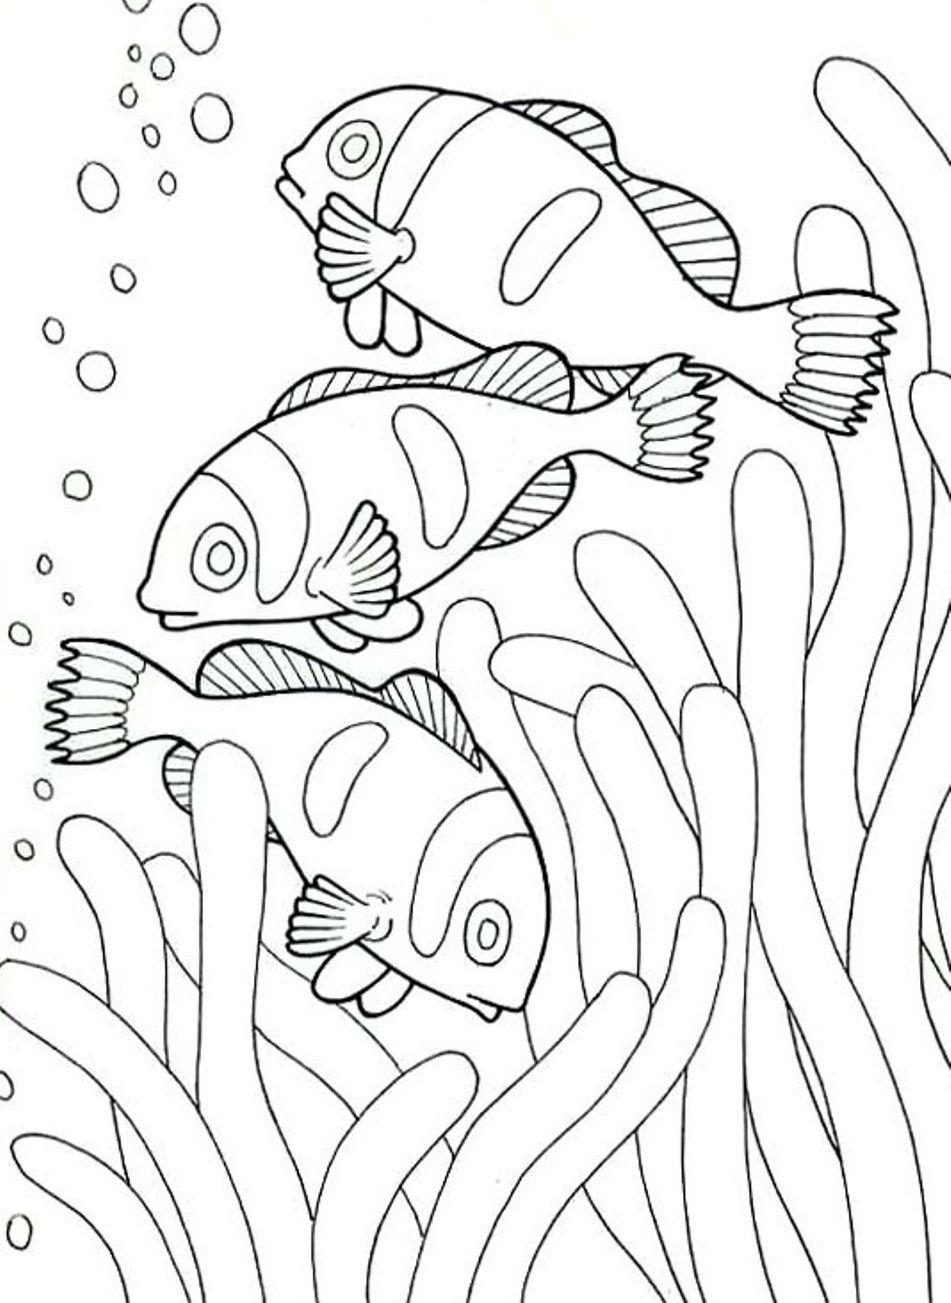 draw remodel coloring pages for adults with sea coloring for kids pinterest creatures and. Black Bedroom Furniture Sets. Home Design Ideas